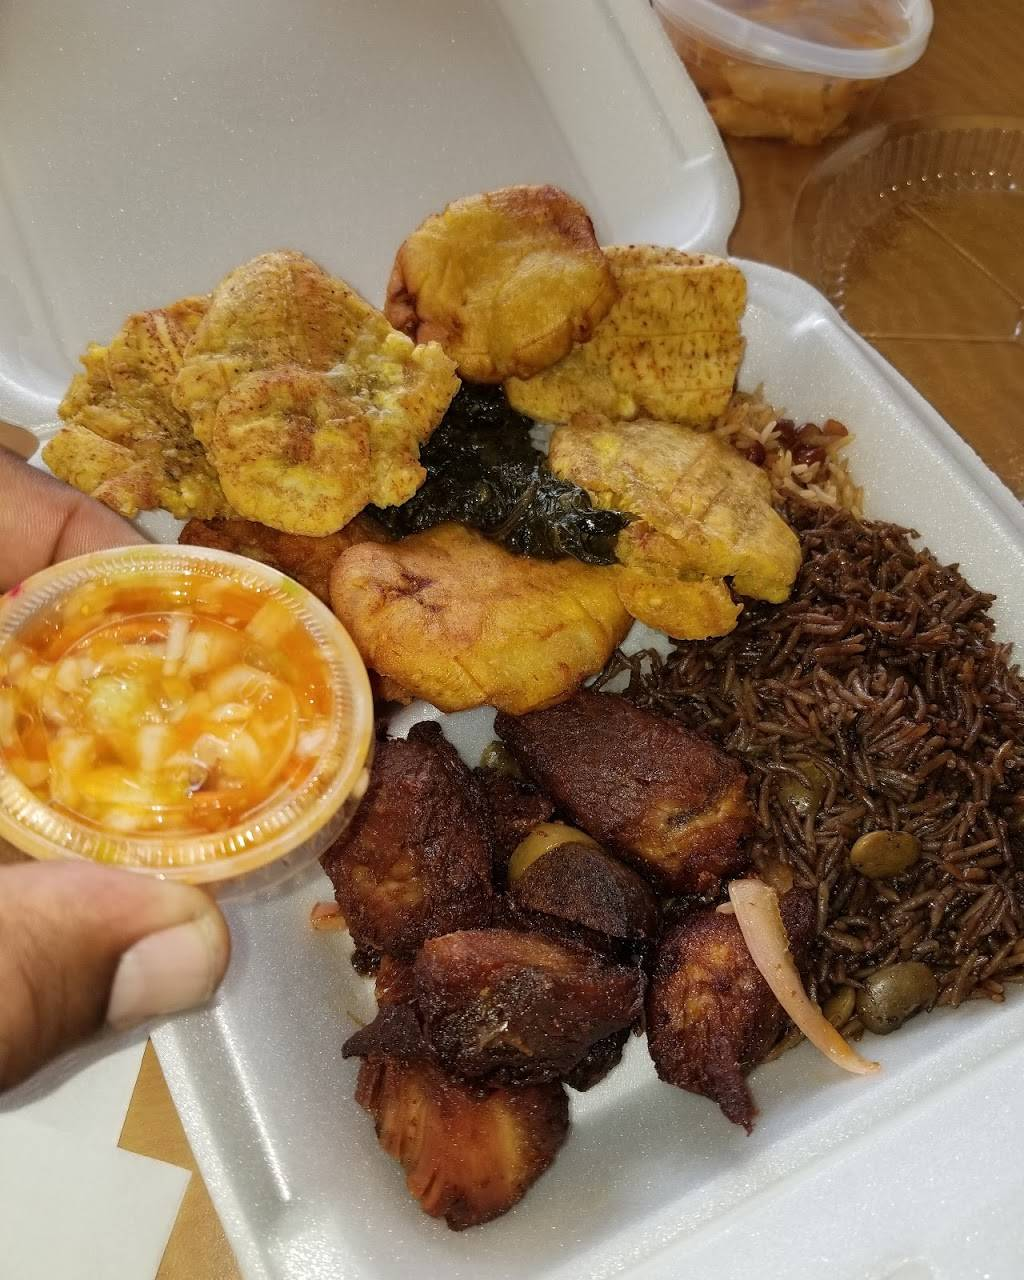 Fancy Buffet Haitian Restaurant | restaurant | 288 N Main St Suite 8, Spring Valley, NY 10977, USA | 8453522600 OR +1 845-352-2600